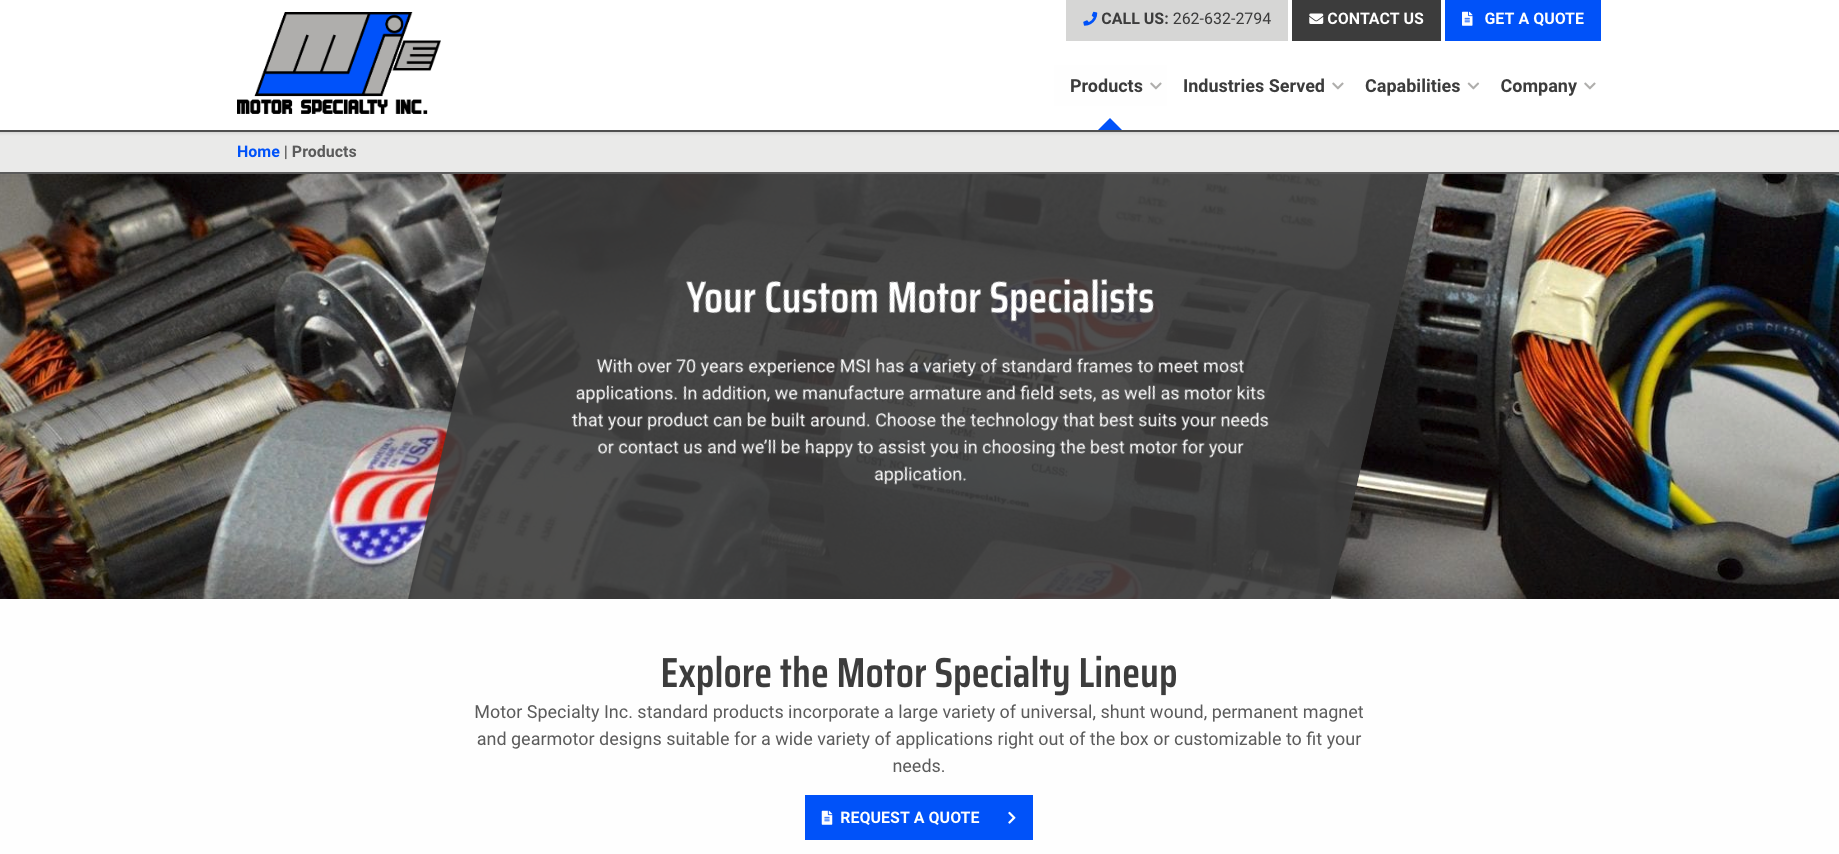 Motor Specialty Services page